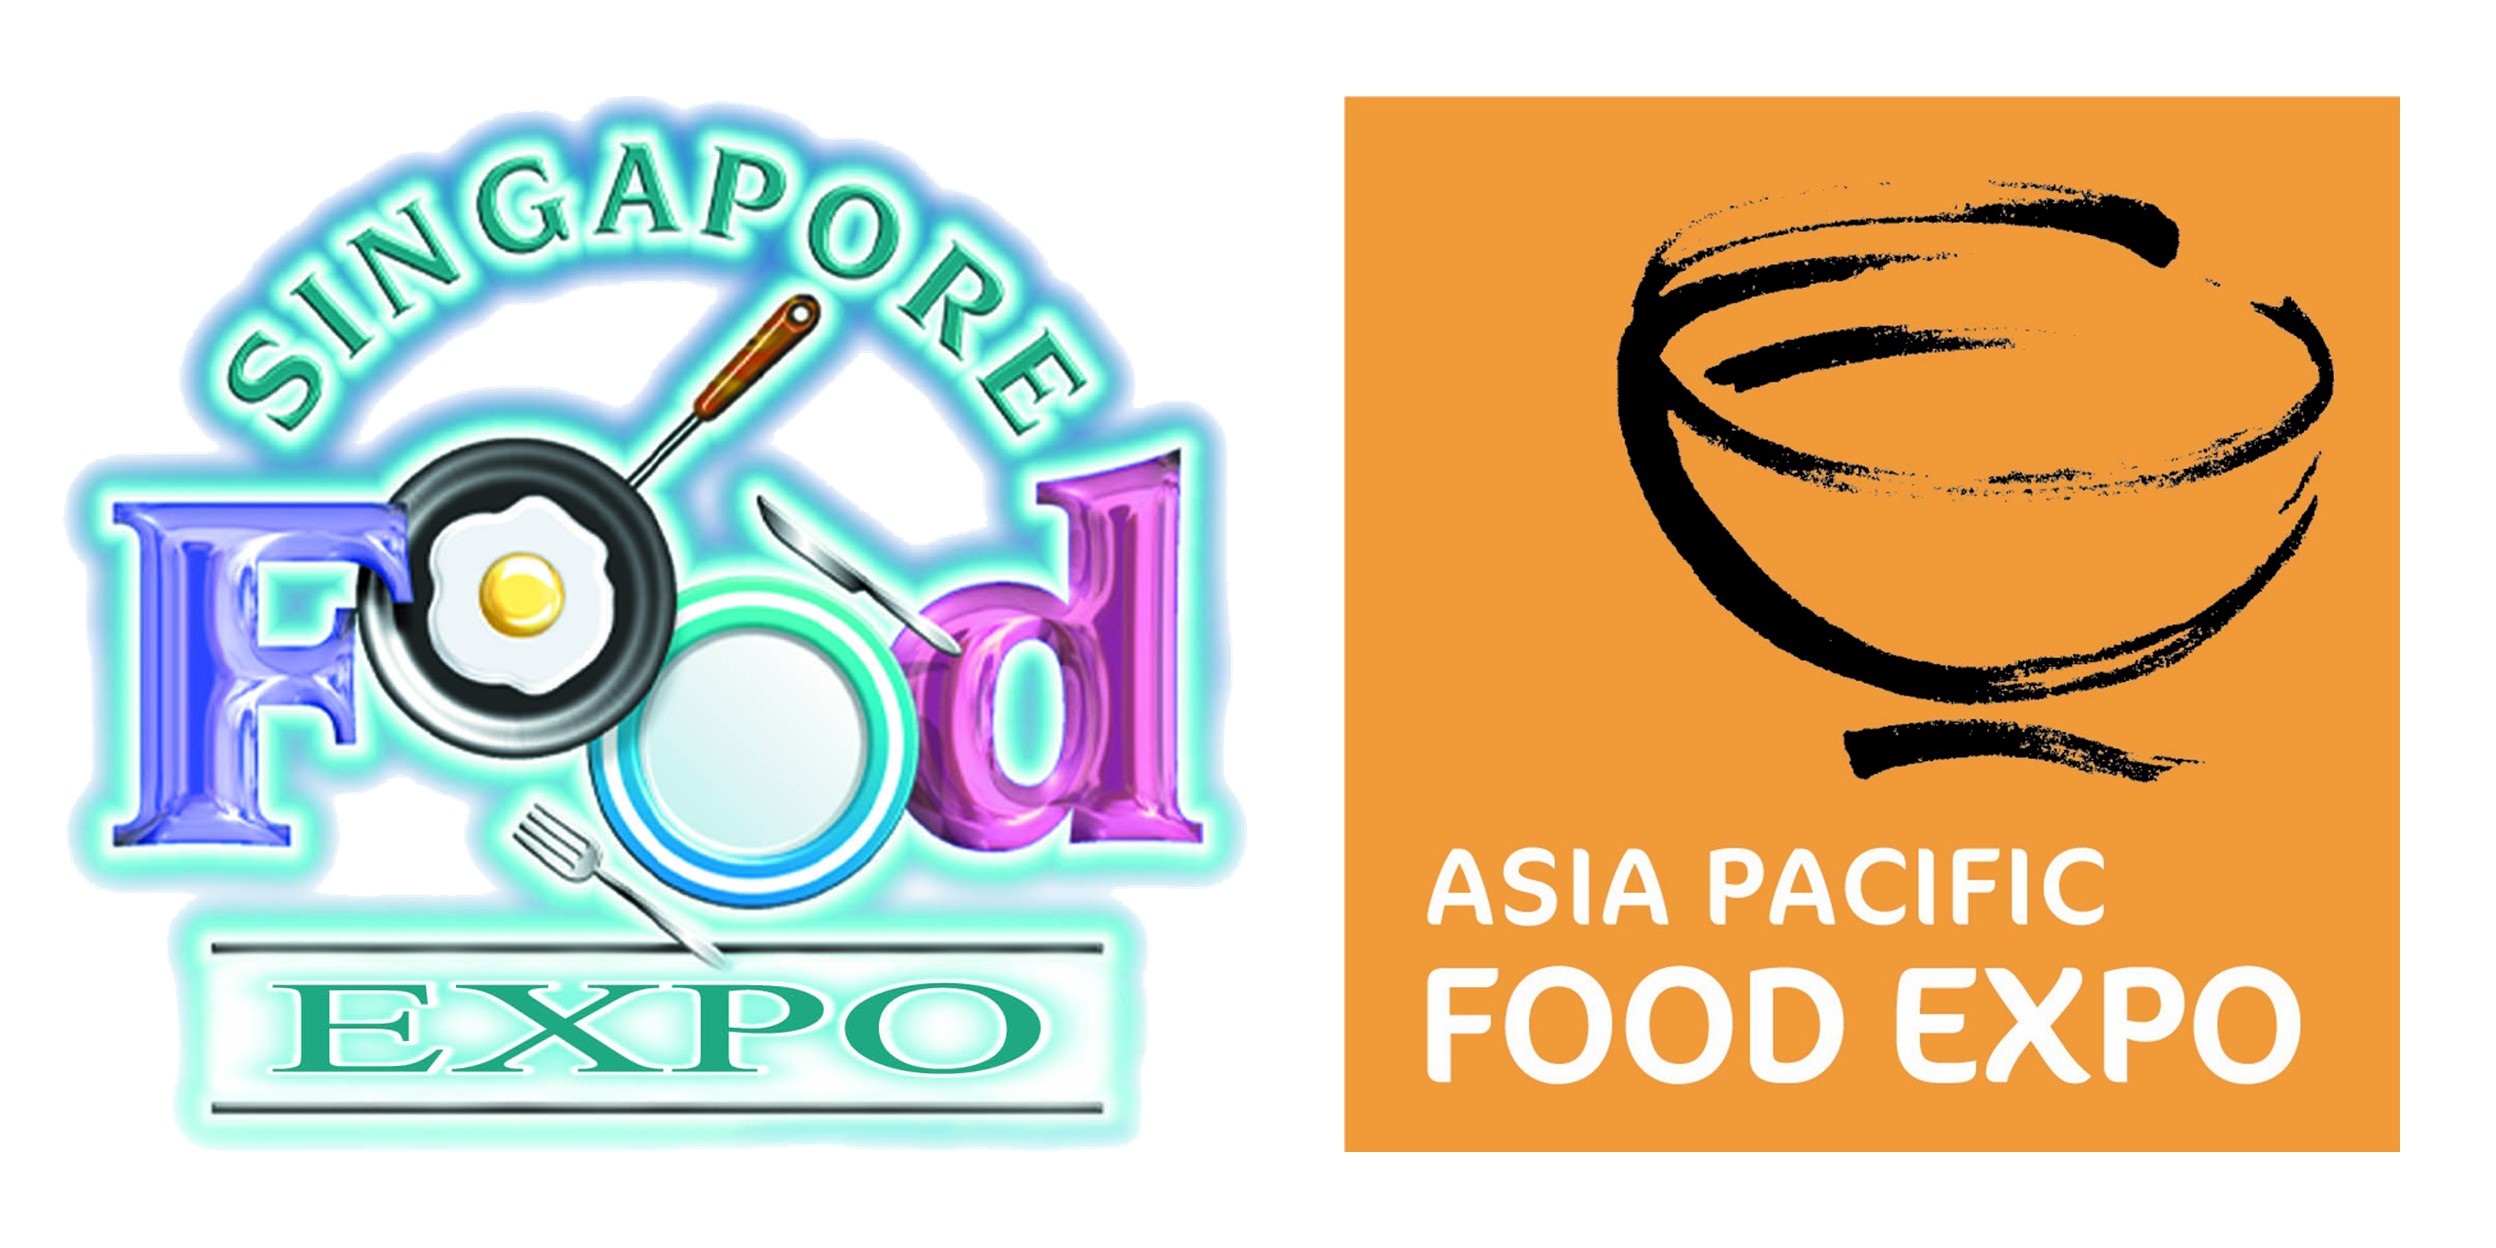 Singapore Food Expo + Asia Pacific Food Expo